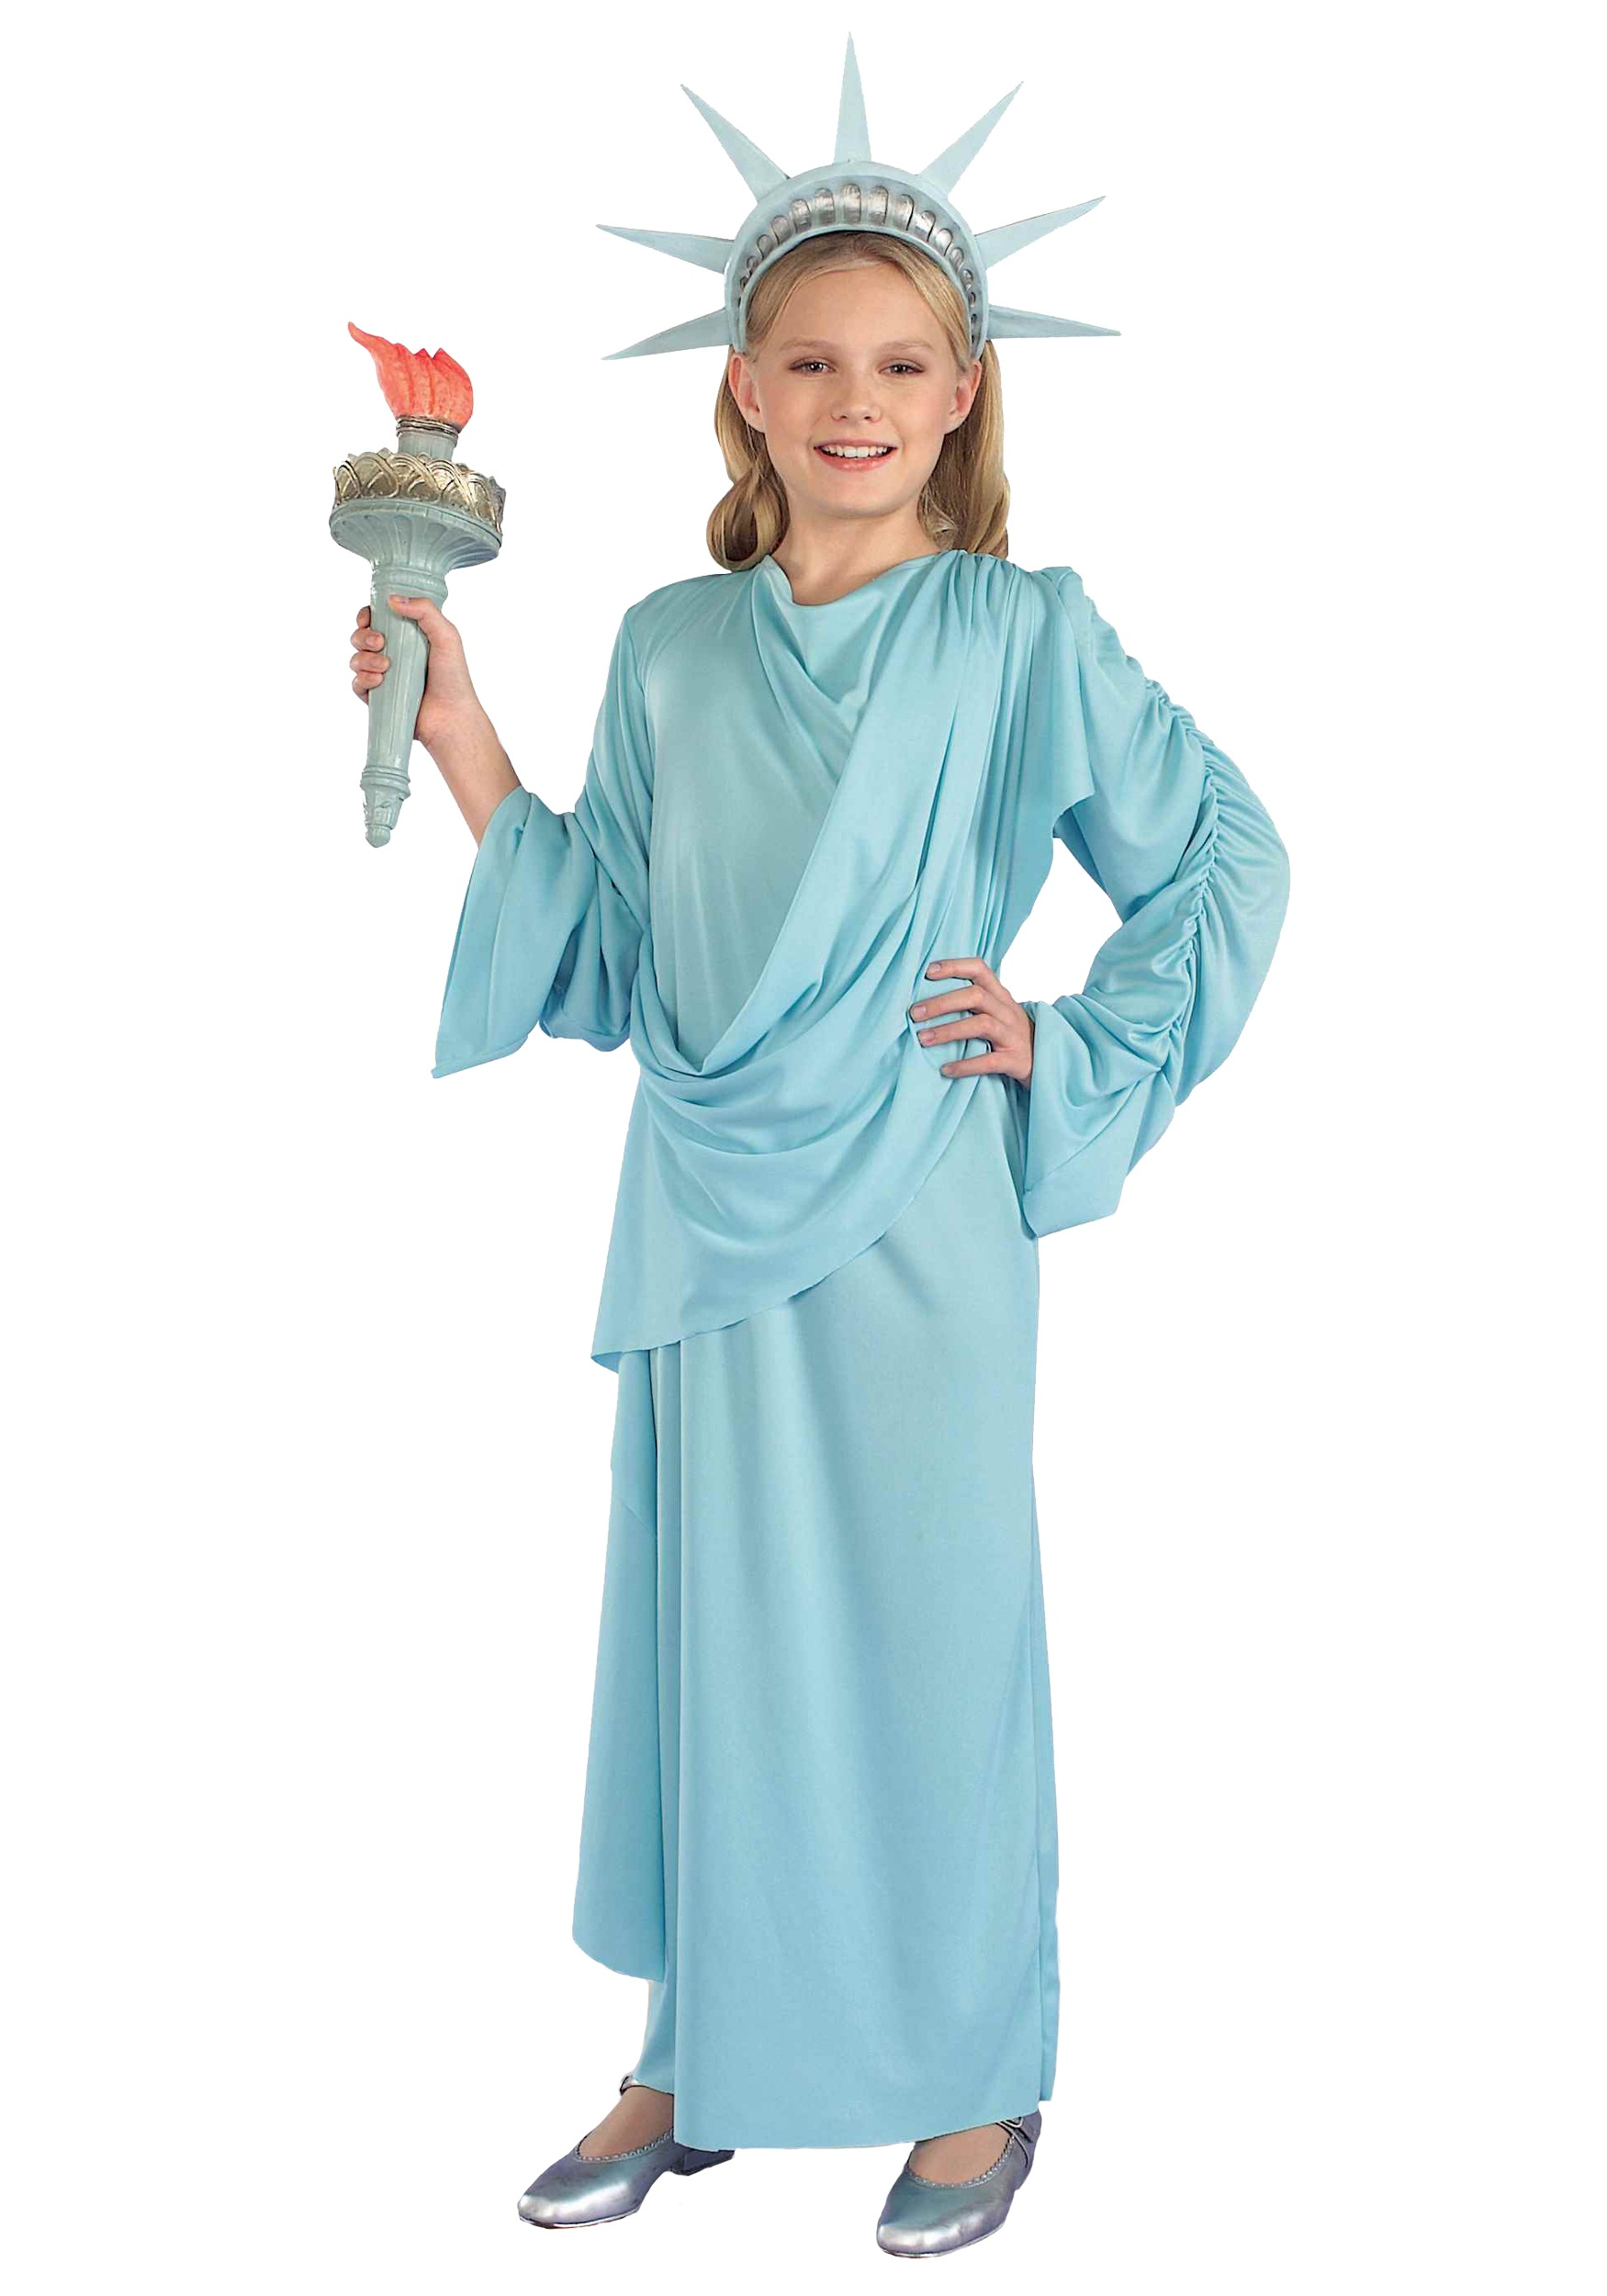 lil miss liberty child costume - halloween costumes